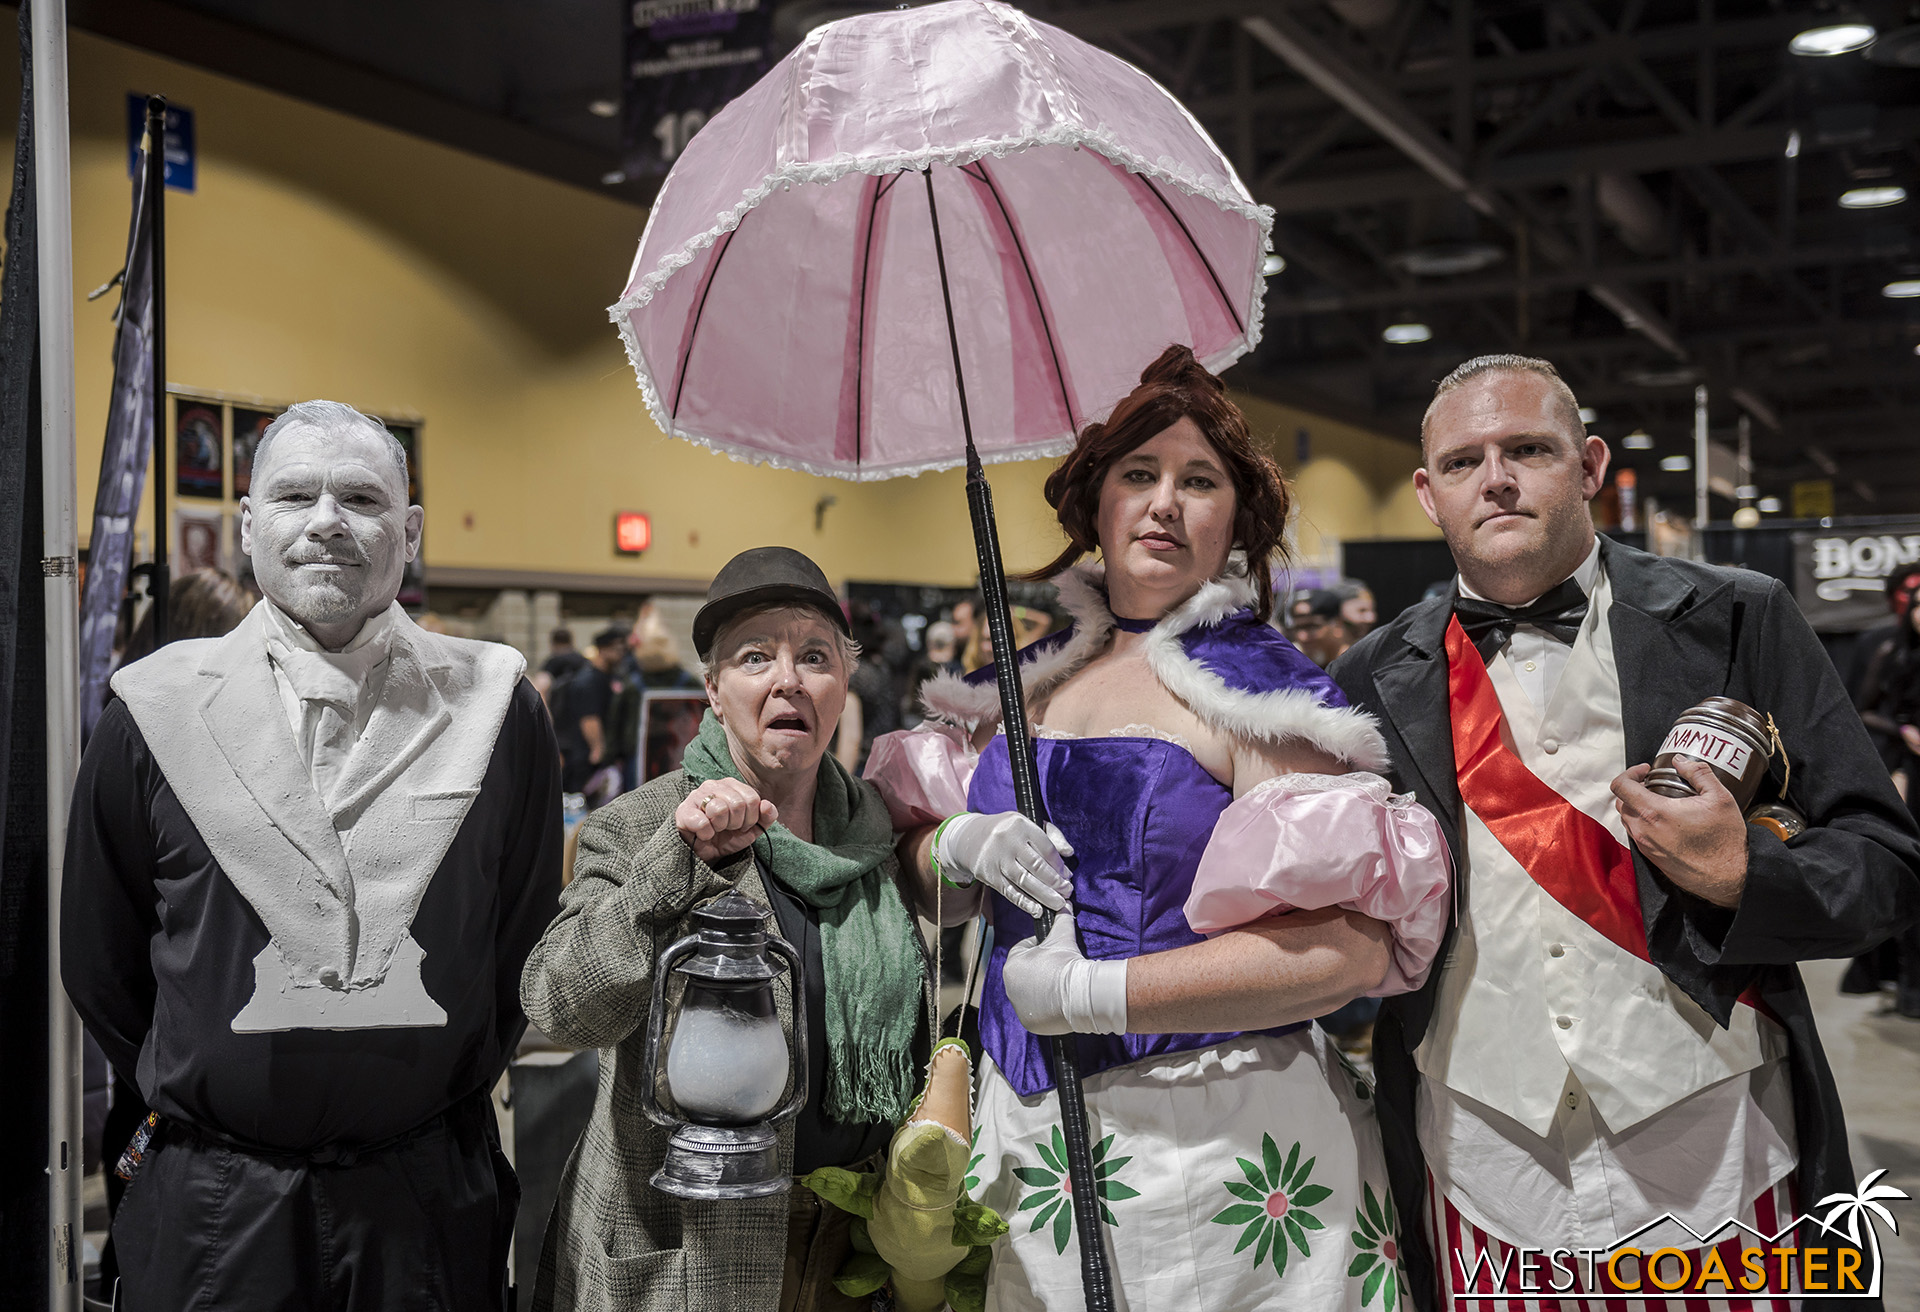 This Haunted Mansion quartet was among many celebrating the Haunted Mansion 50th Anniversary in style!